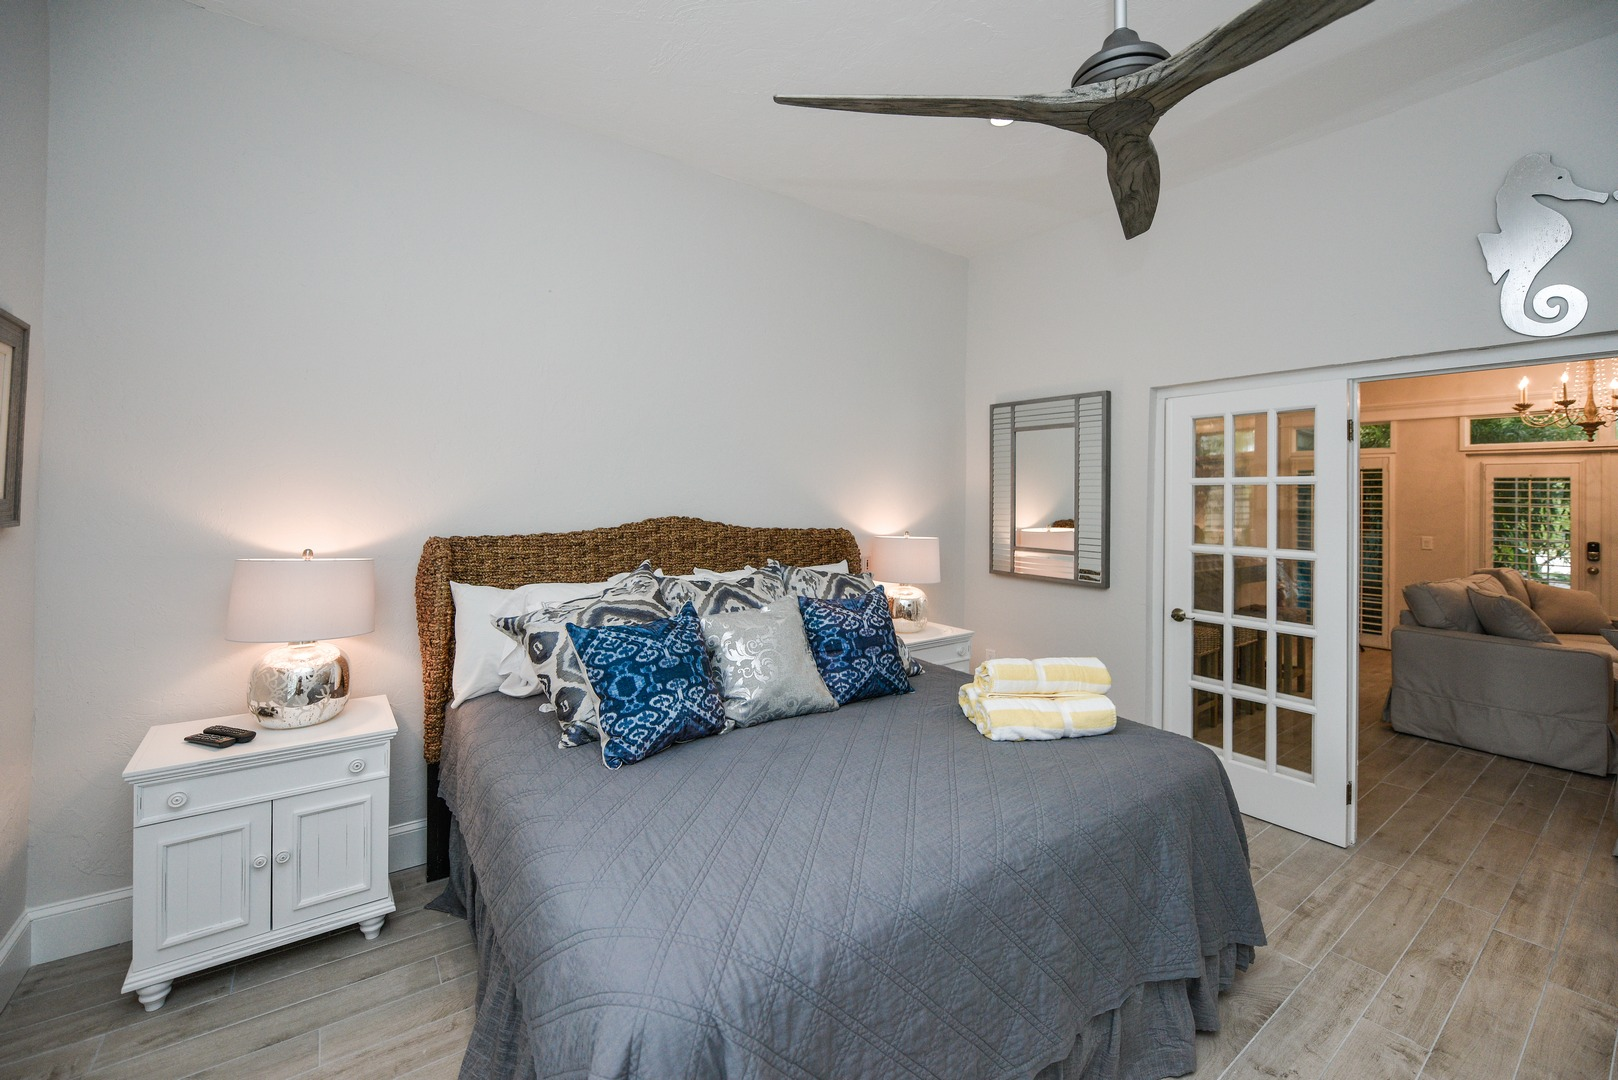 This King Size Bed looks small in this large room